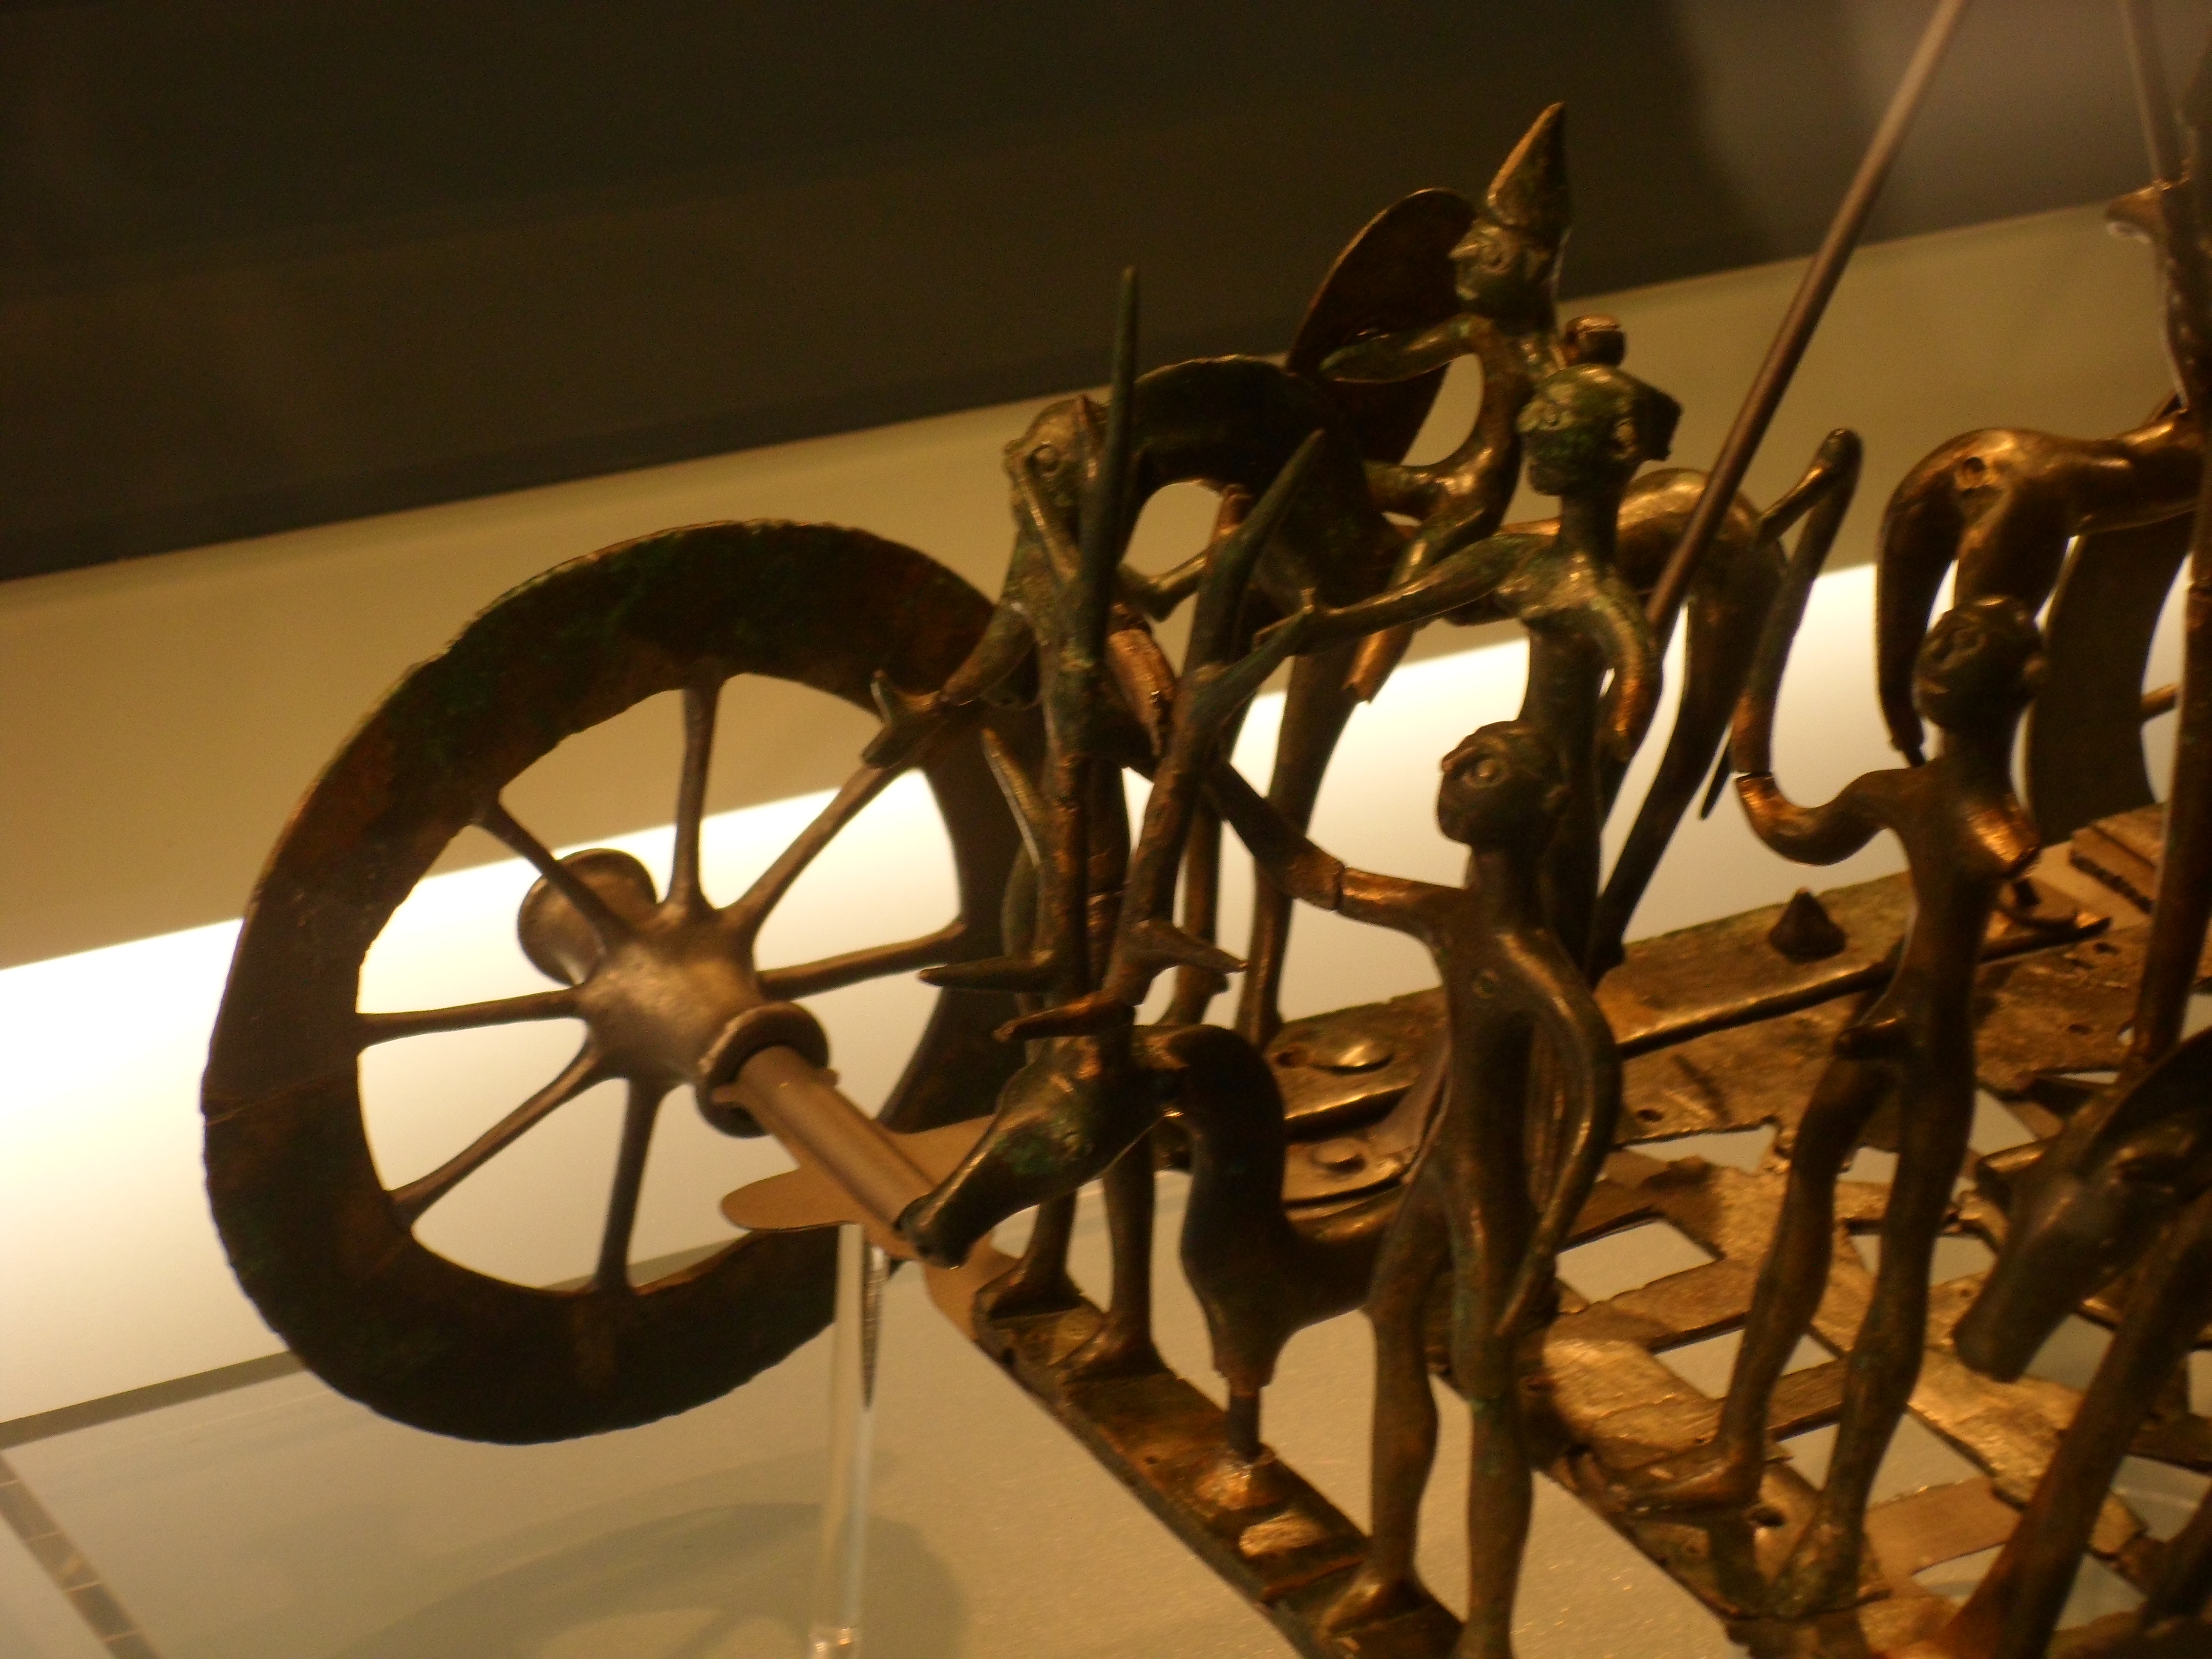 Detail of the bronze figurines standing on the base of the bronze wagon